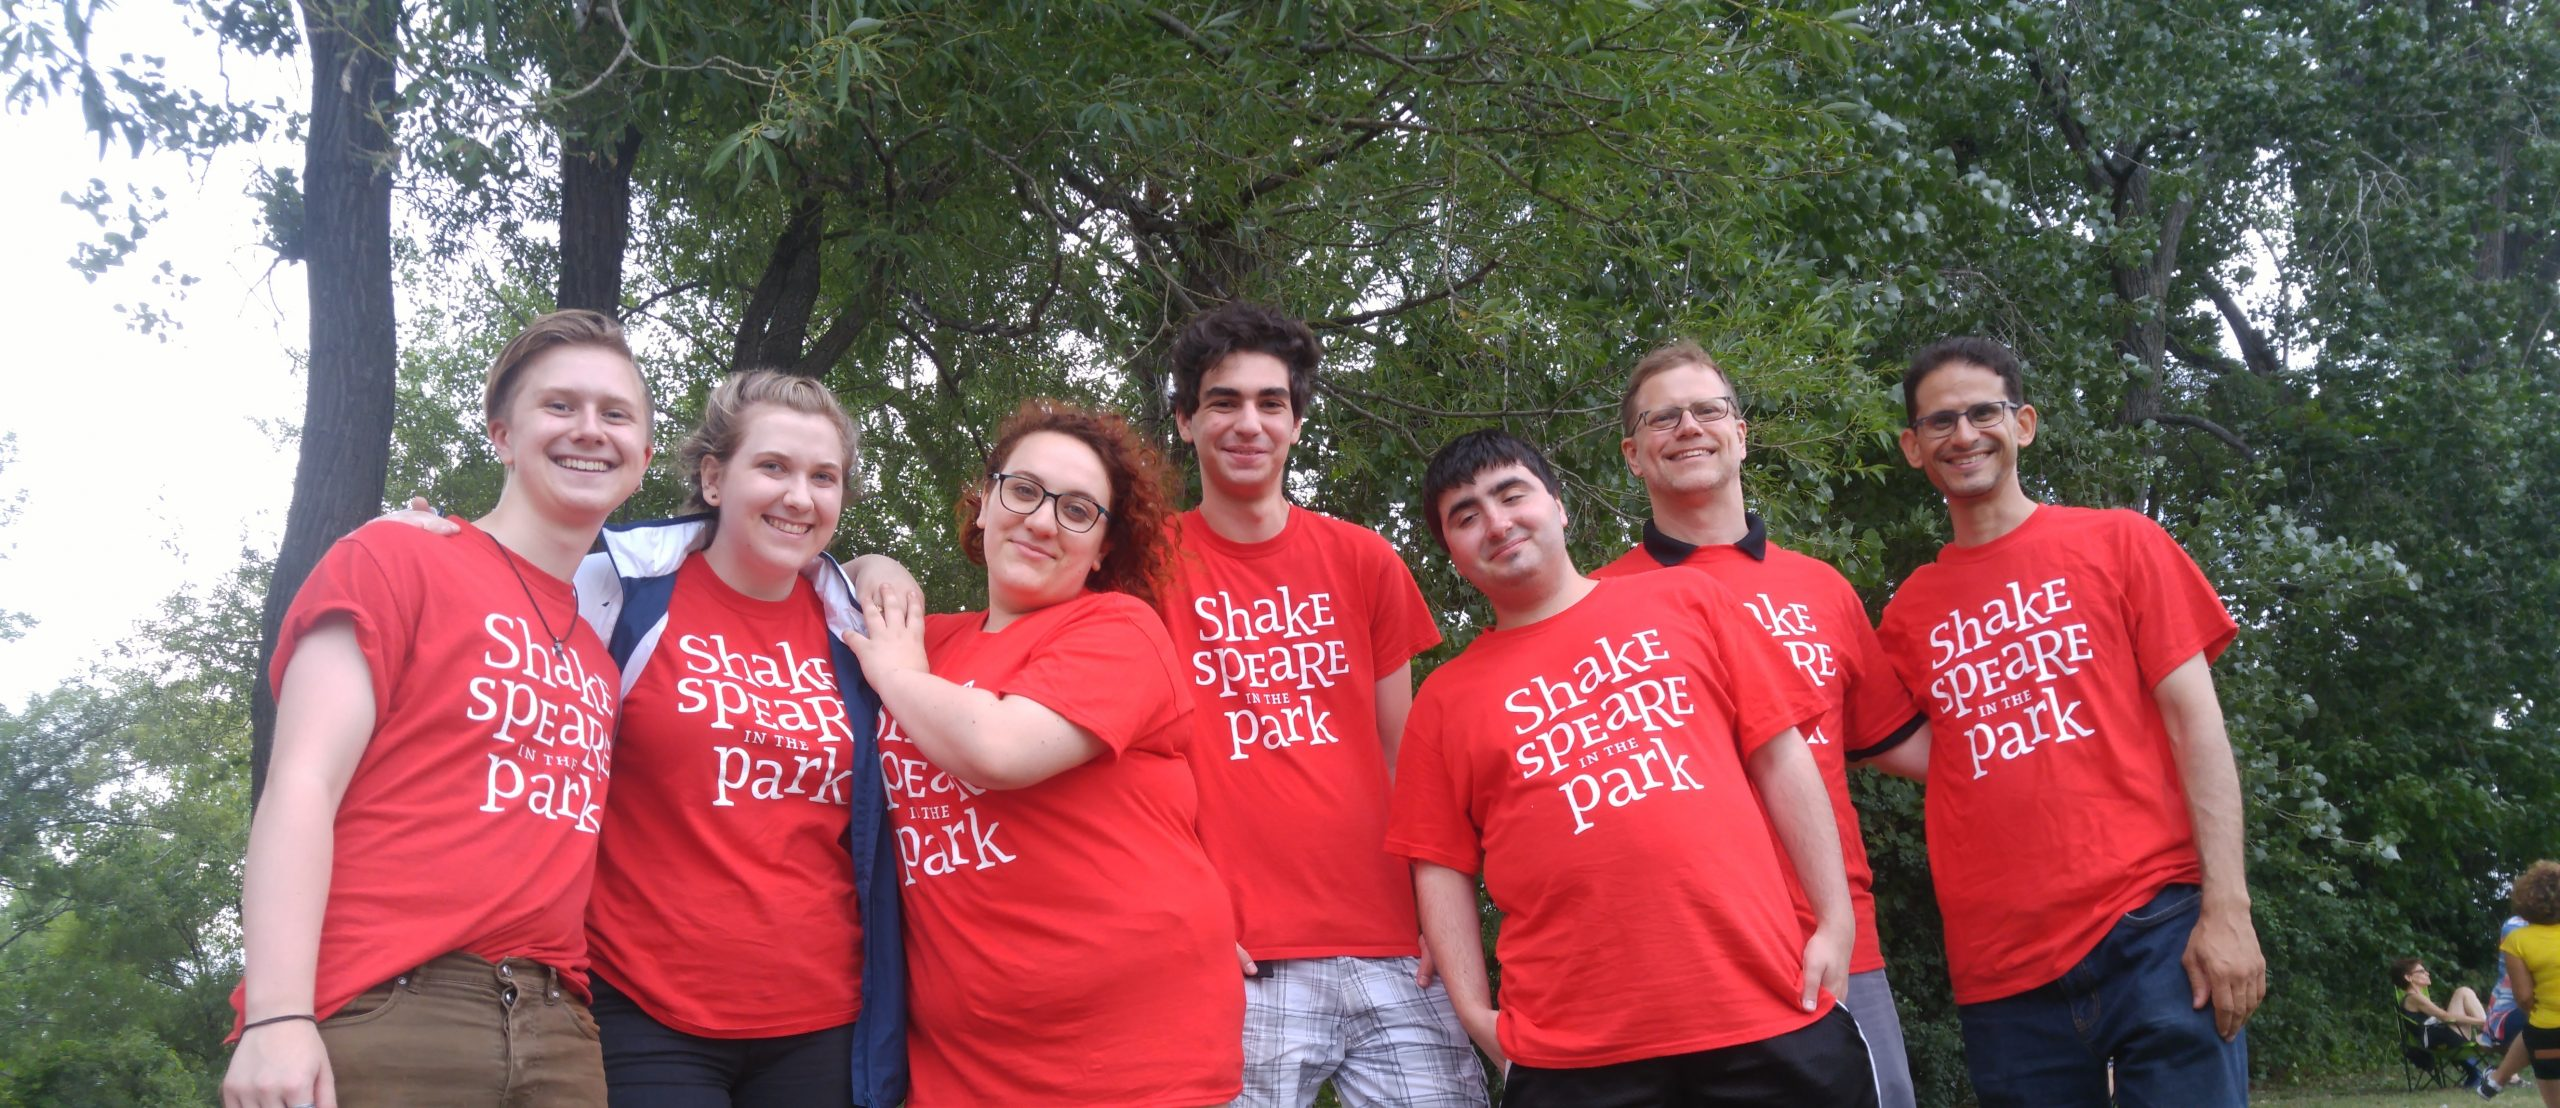 8 volunteers with the red repercussion theatre tshirts from 2018